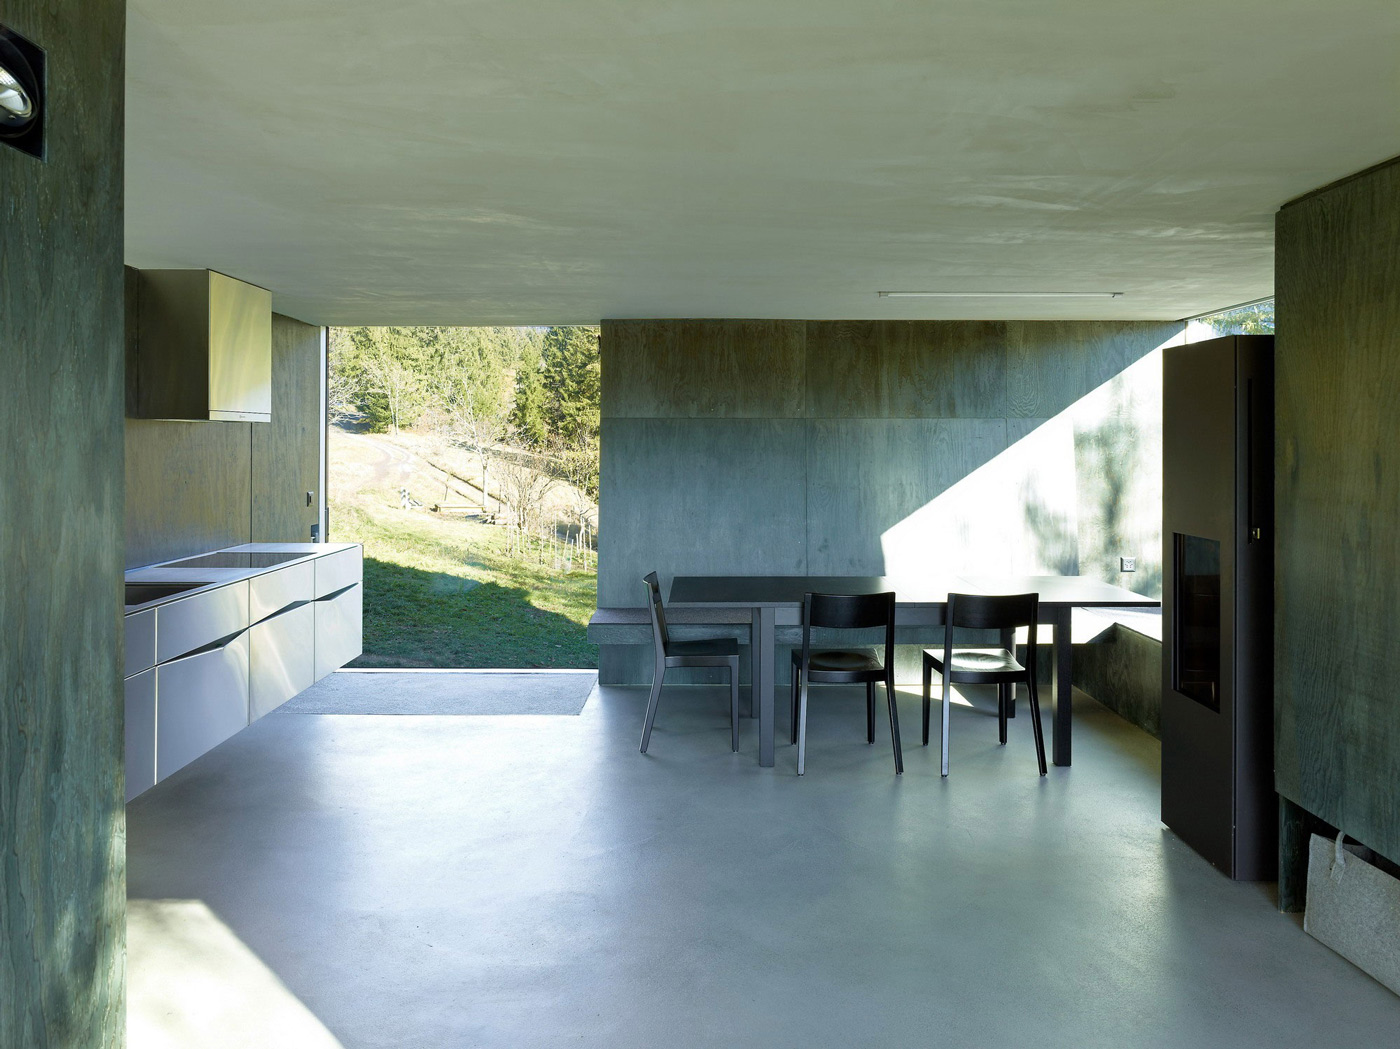 Kitchen, Dining, Open Plan Living, Holiday Home Renovation in Ayent, Switzerland